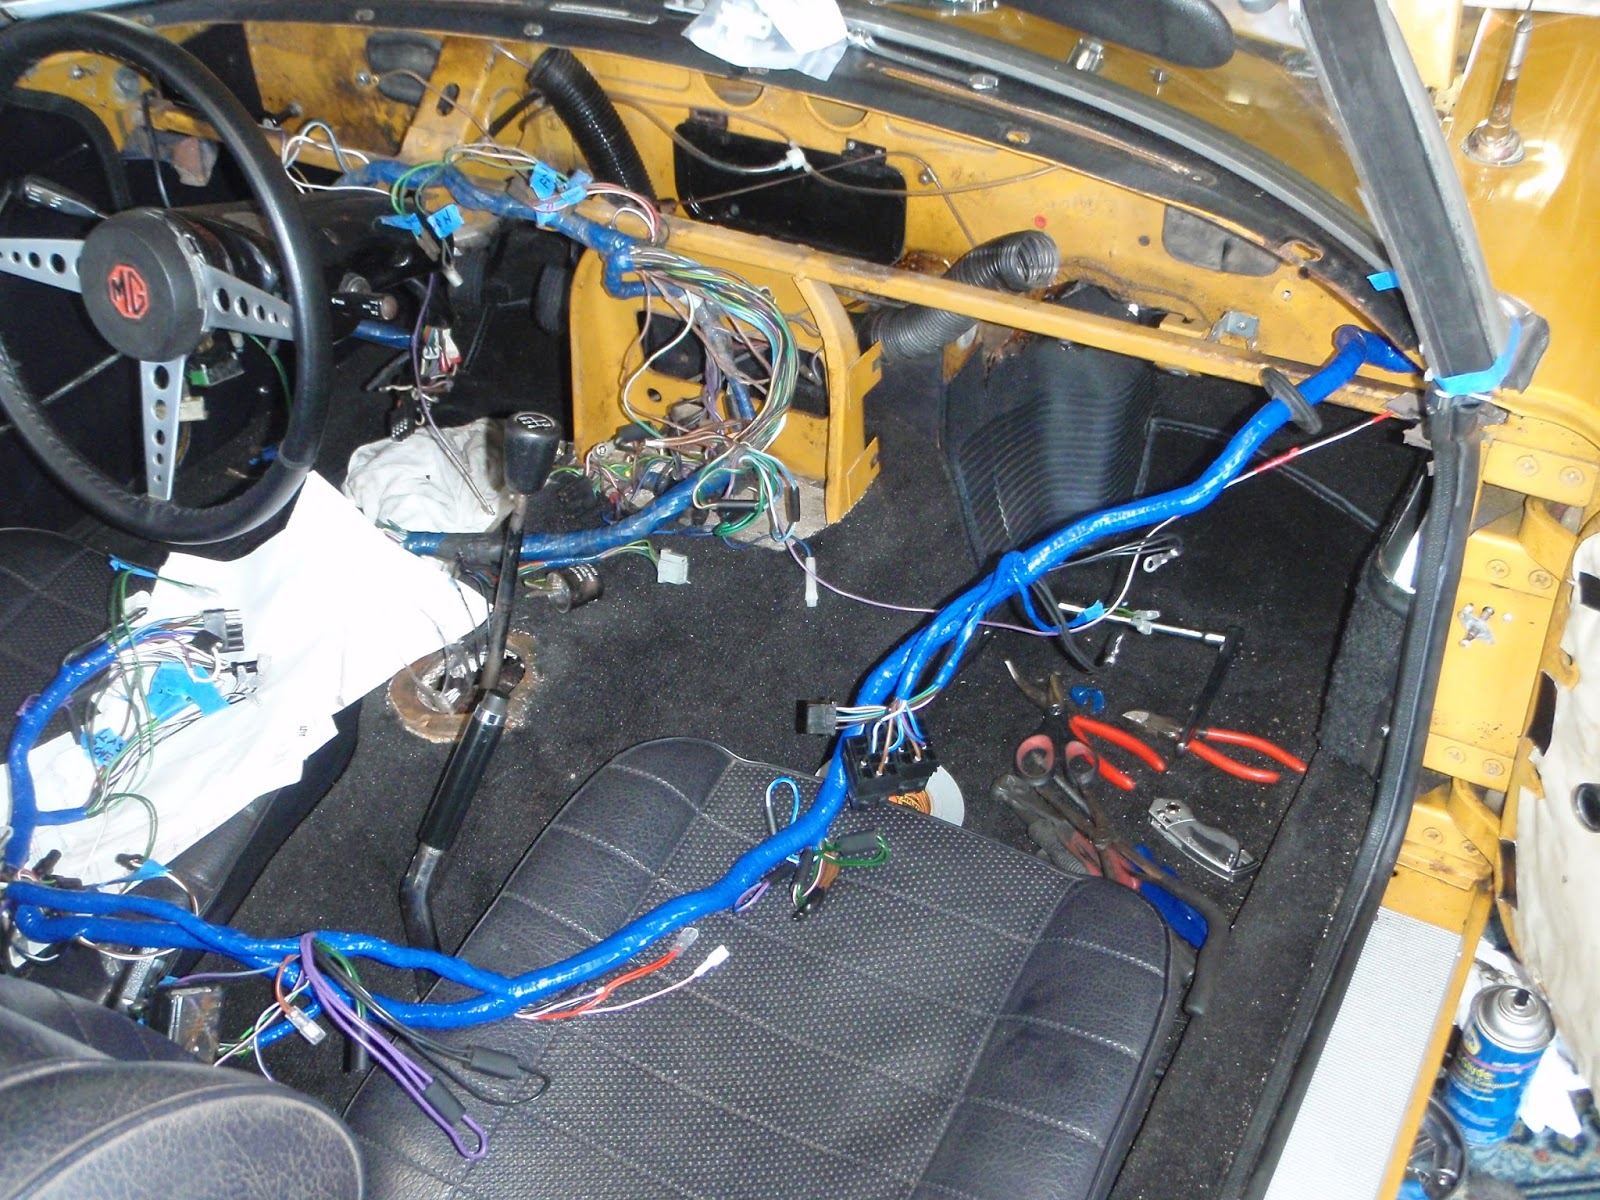 hight resolution of mgb in the garage new wiring harness vinyl top alternator etc 1978 mgb dashboard wiring